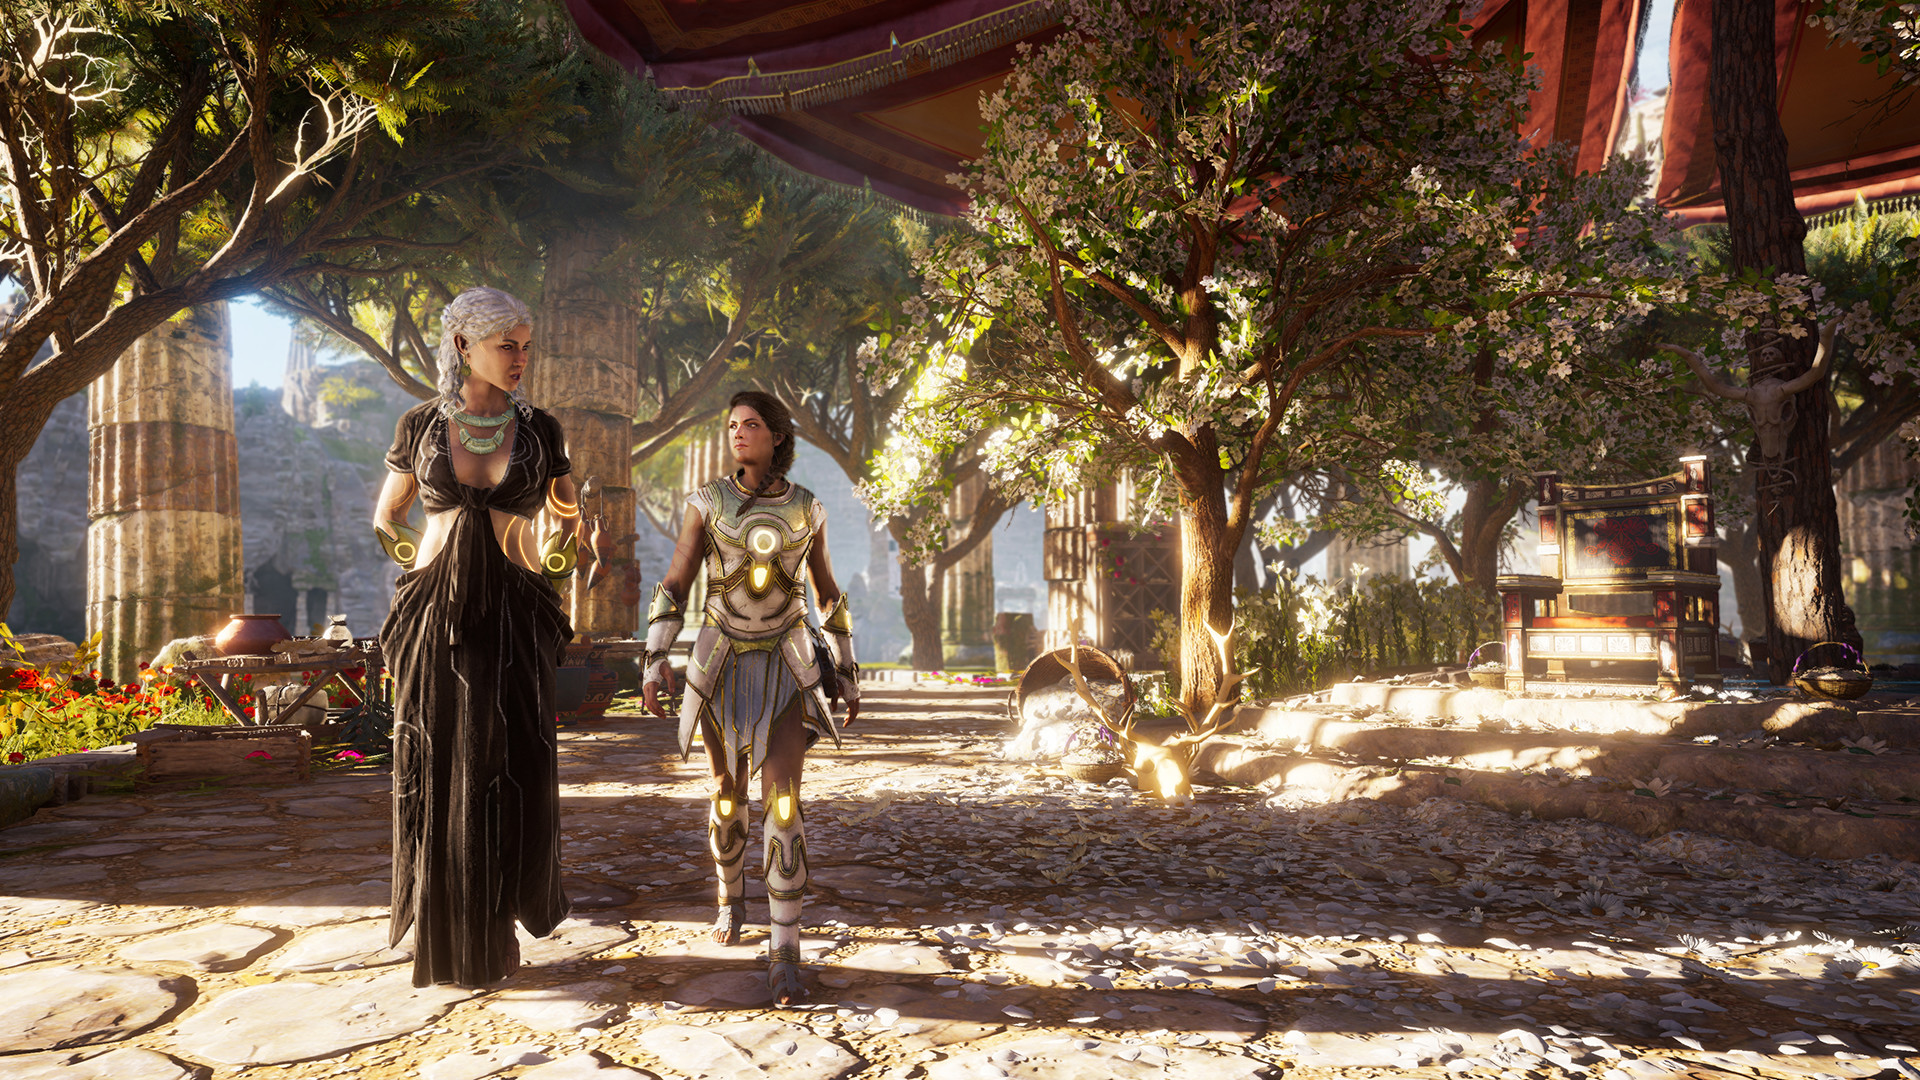 Assassin's Creed Odyssey: The Fate of Atlantis DLC episode 1 is free through Sept. 1